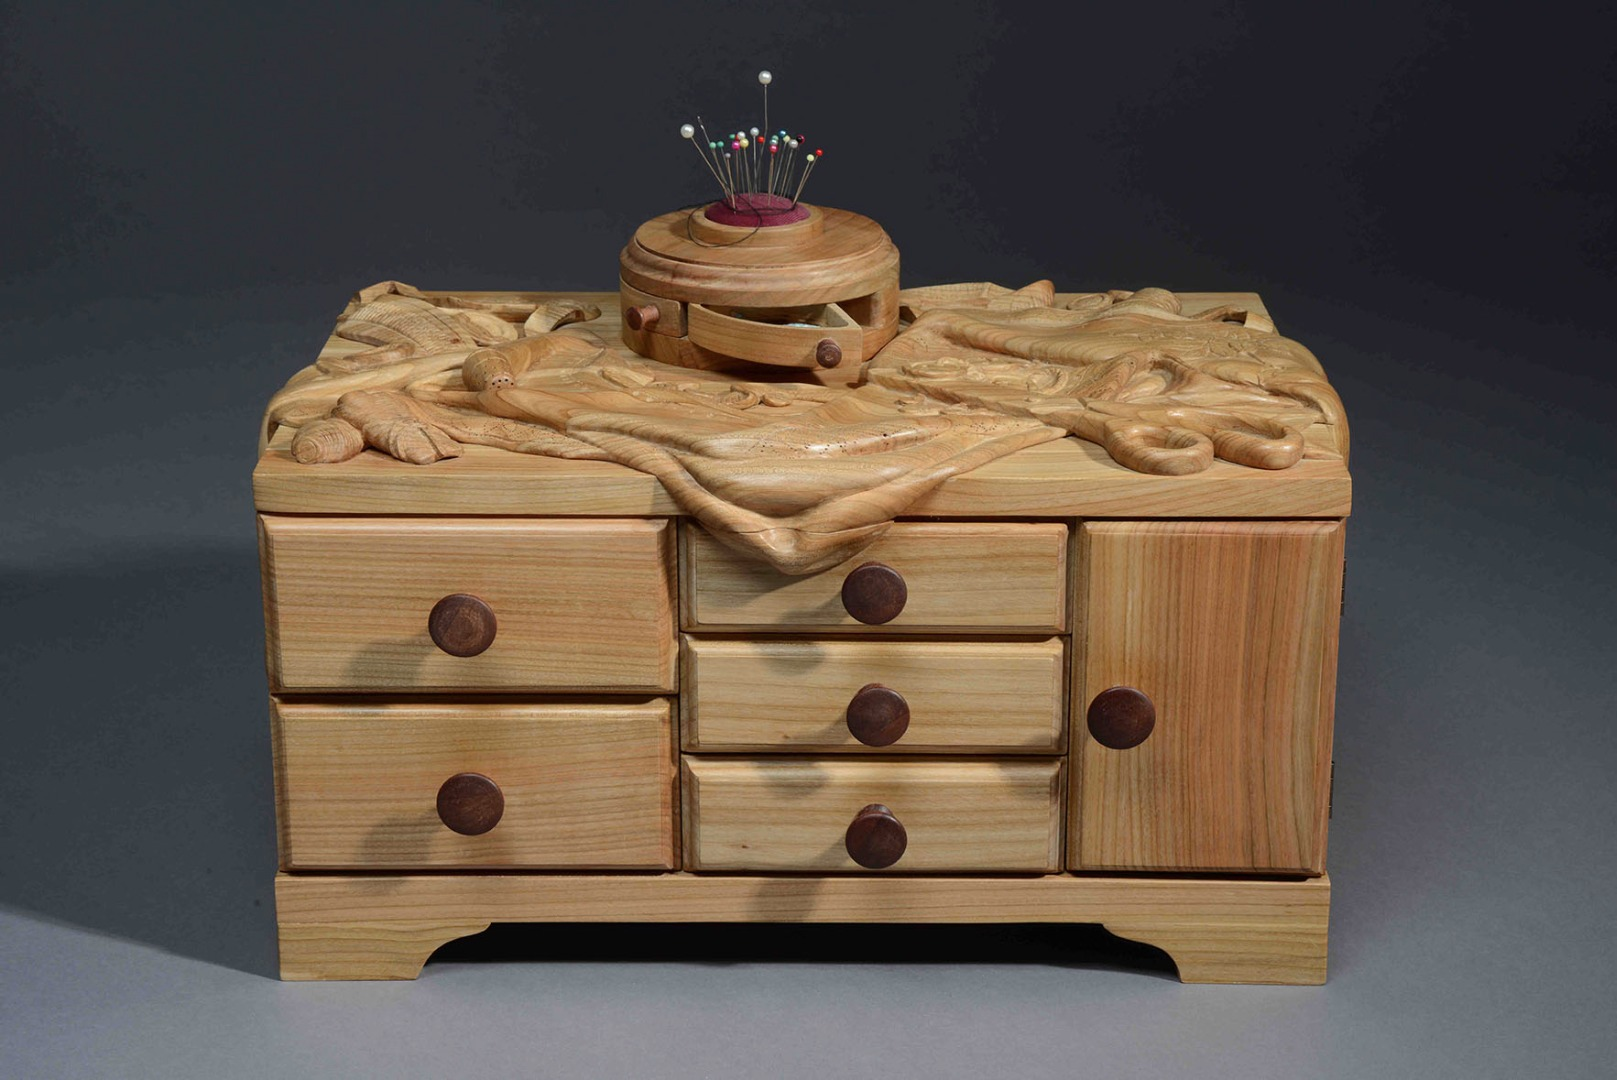 Sewing Box II in Cherry Wood